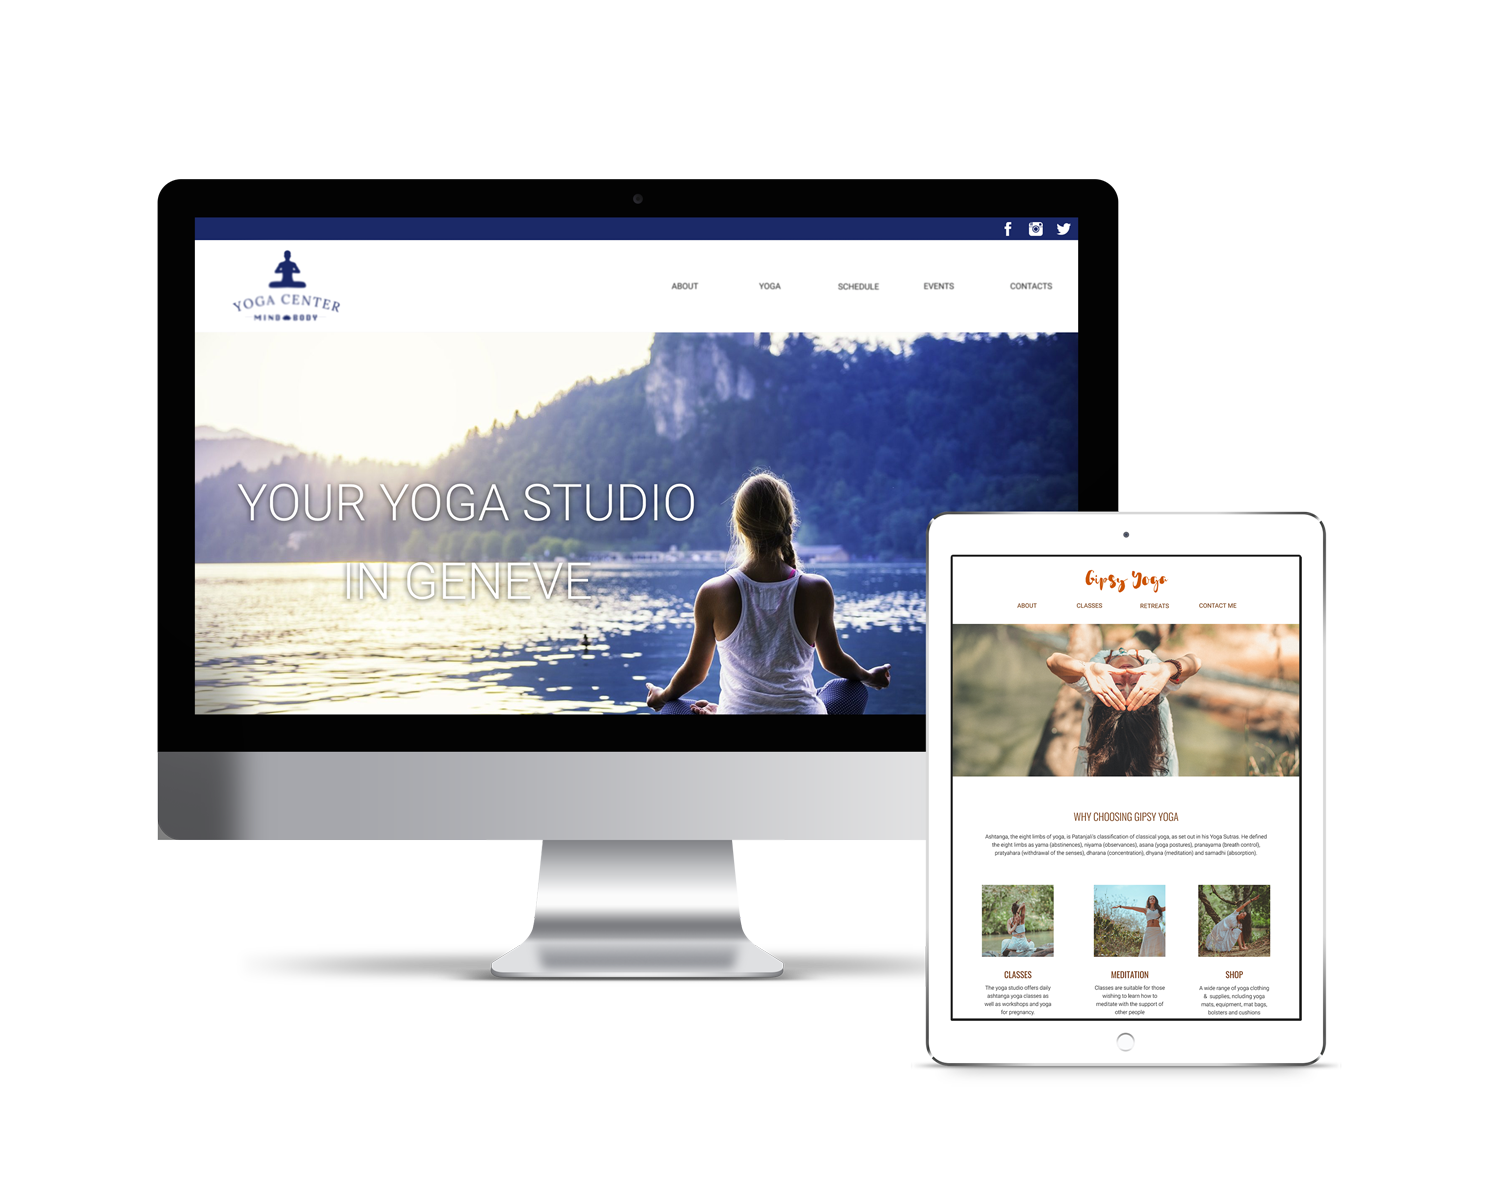 Website design for yoga teachers